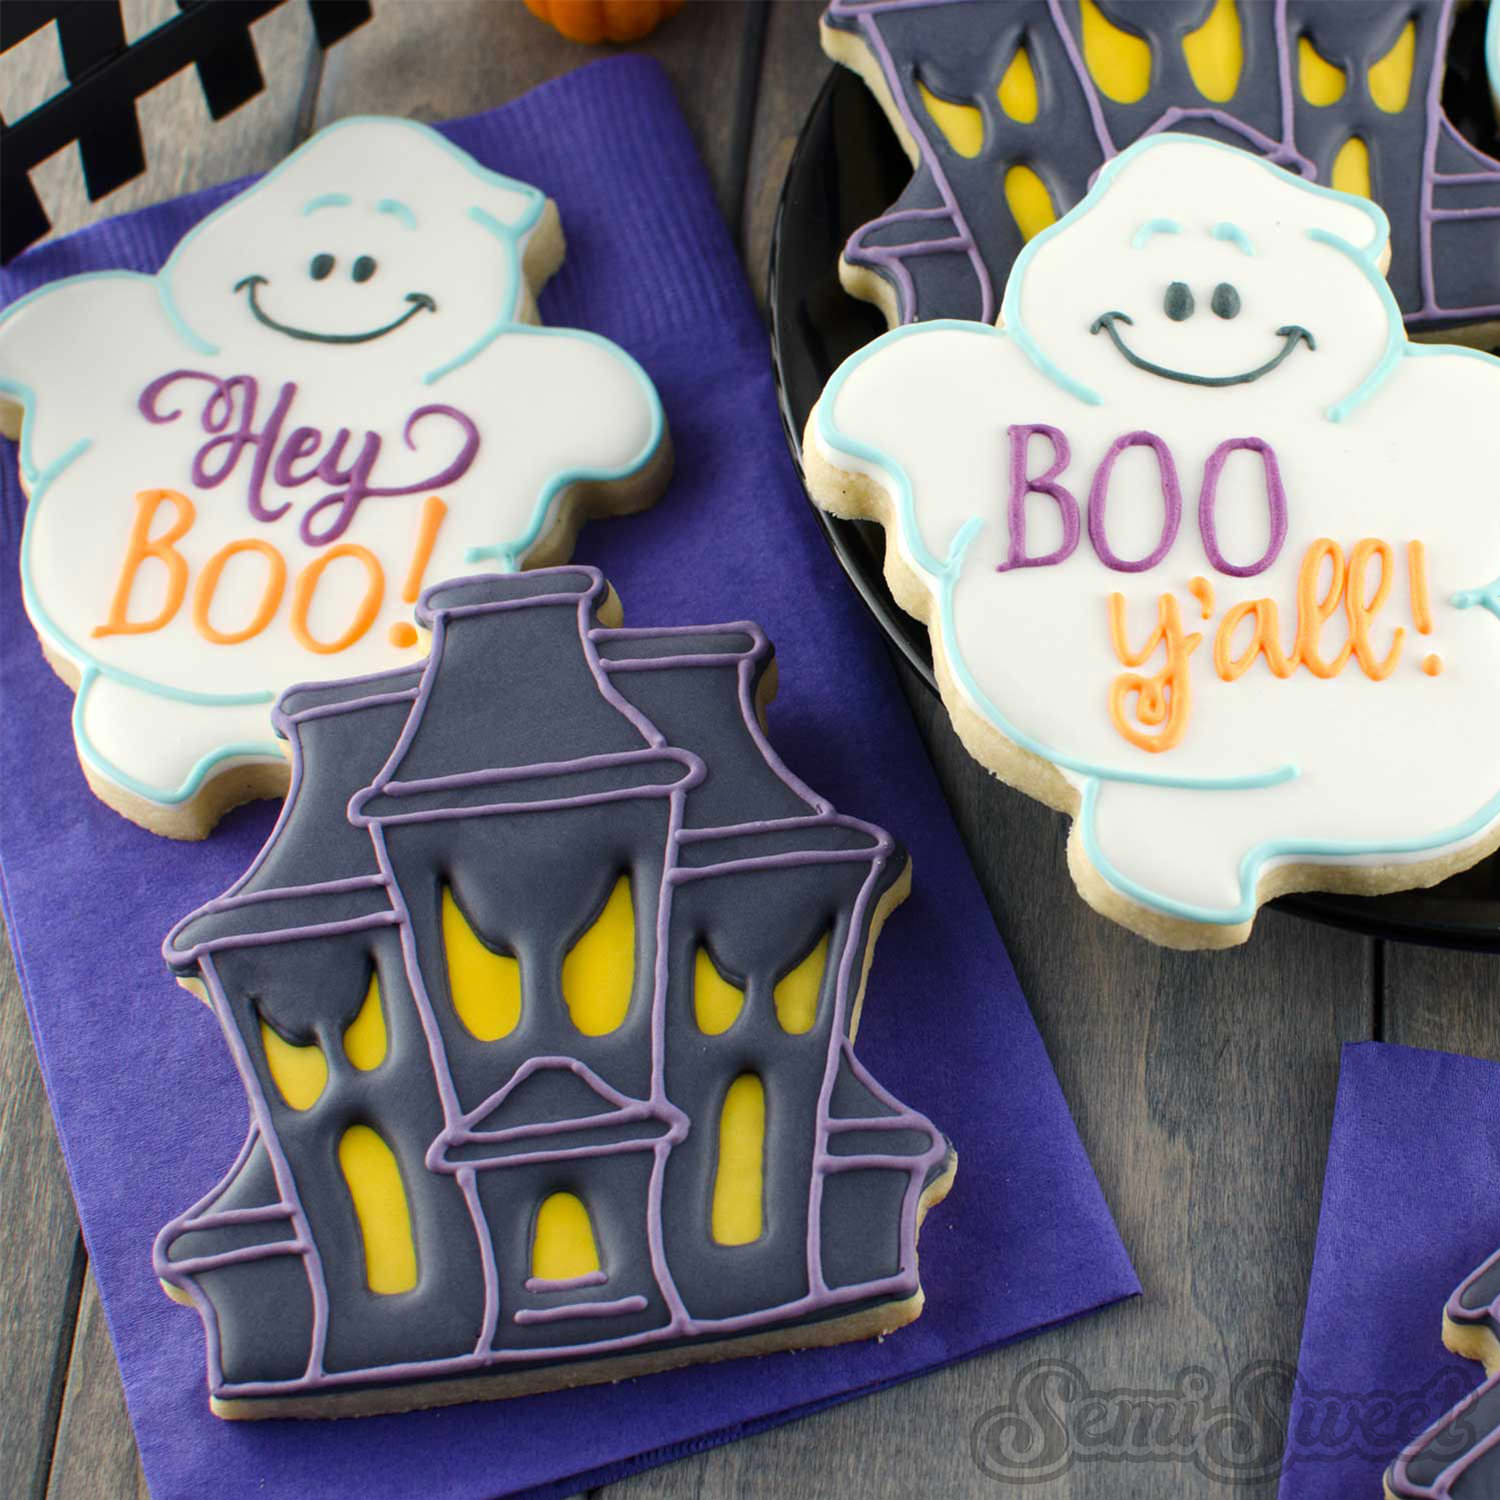 How to Make Haunted House Cookies